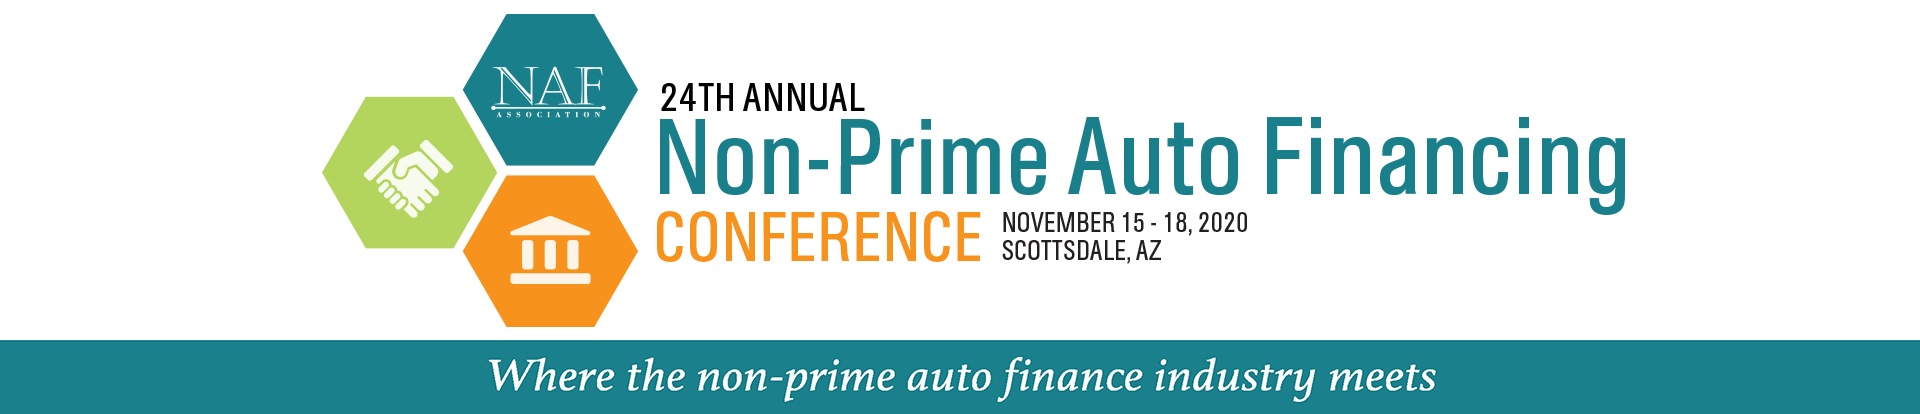 24th Annual Non-Prime Auto Financing Virtual Conference